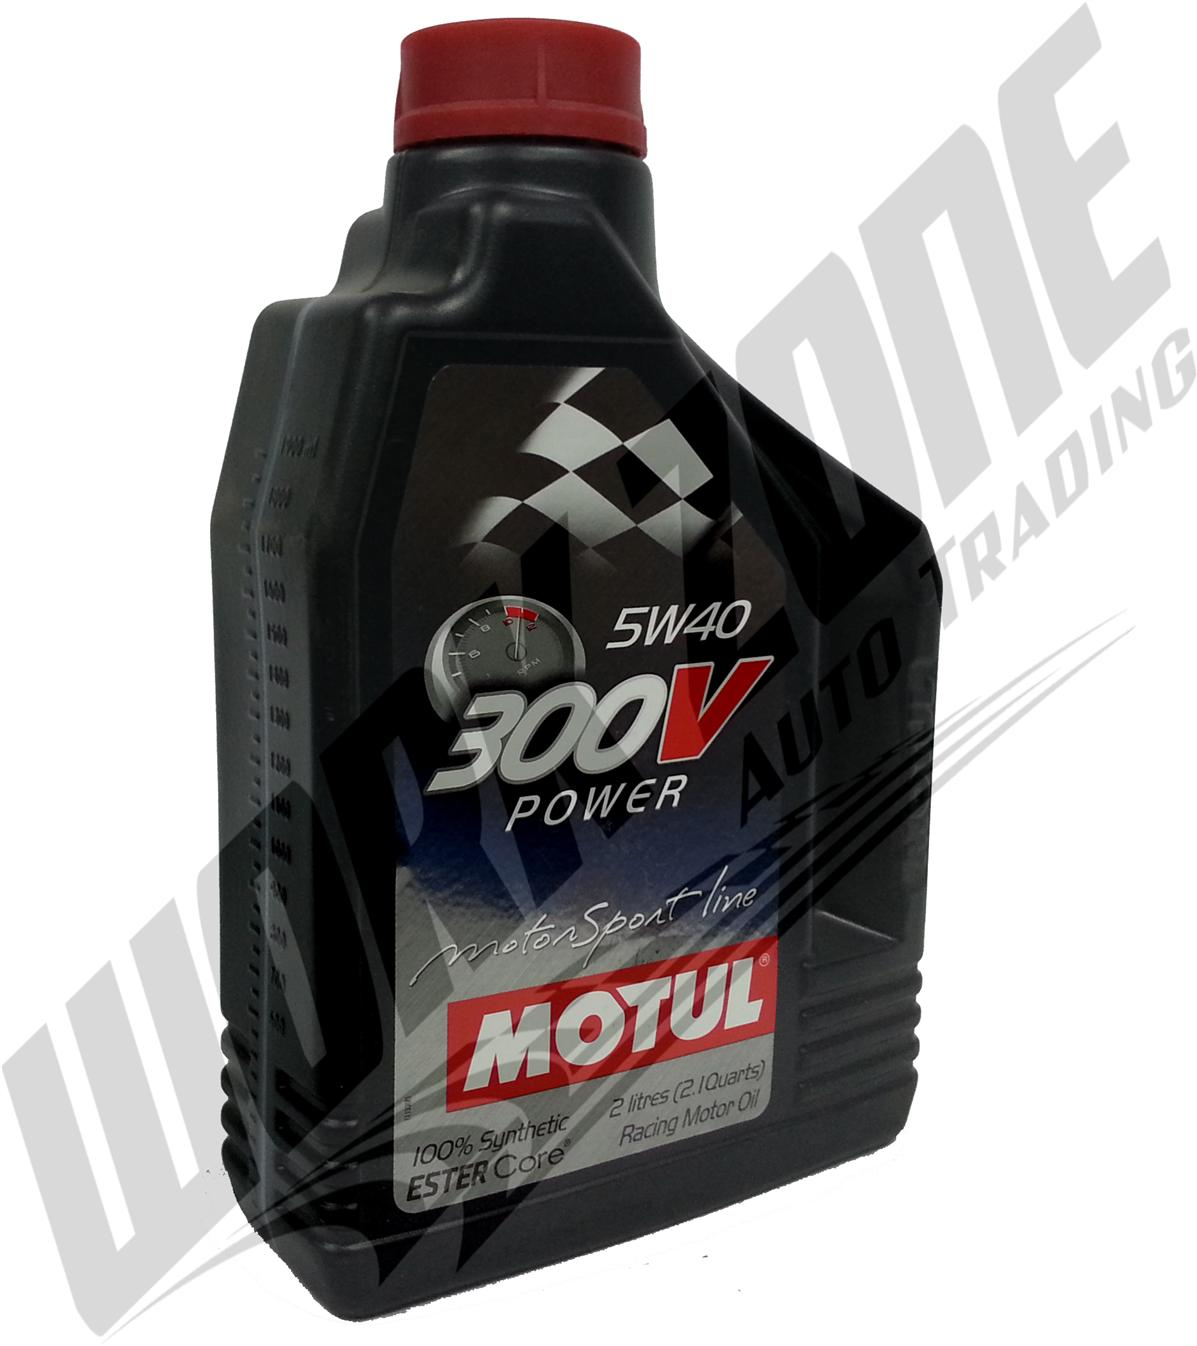 motul 300v power 5w40 engine oil 2 end 12 21 2017 11 41 am. Black Bedroom Furniture Sets. Home Design Ideas